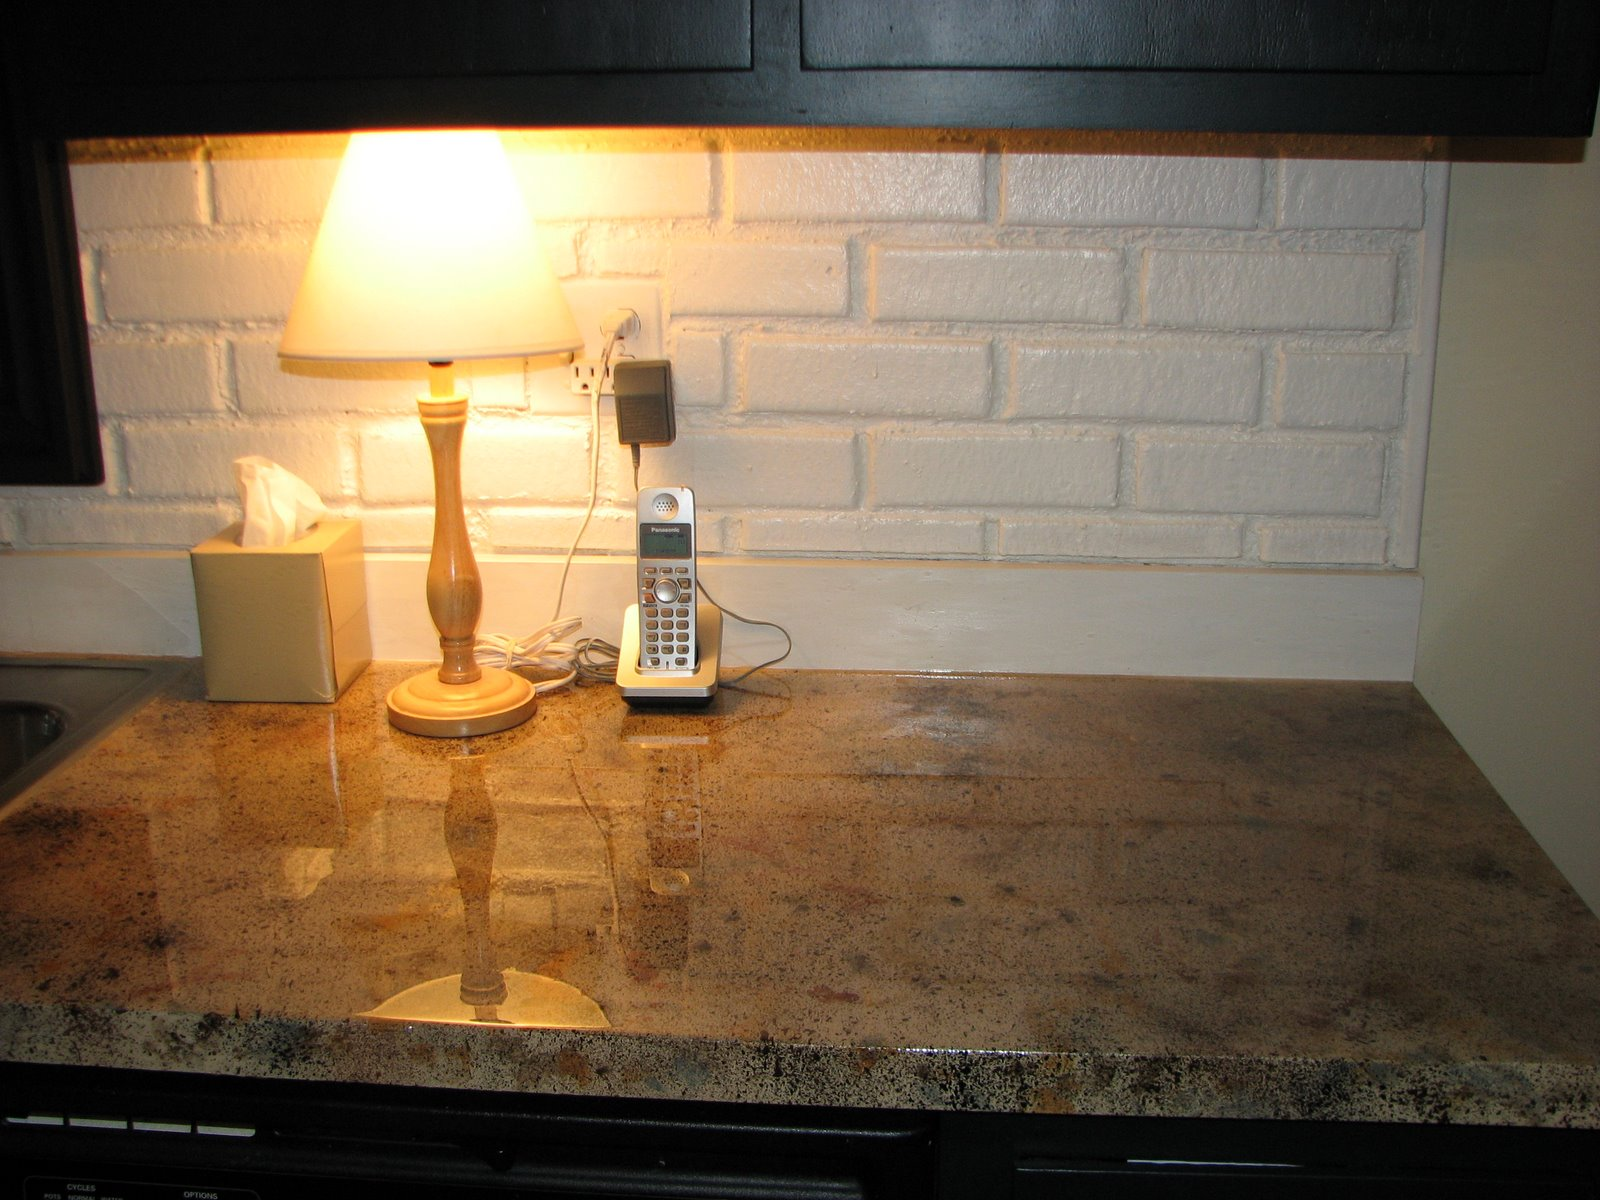 Nesting: DIY Faux Granite Countertops! - Happily Married/Recaps ...